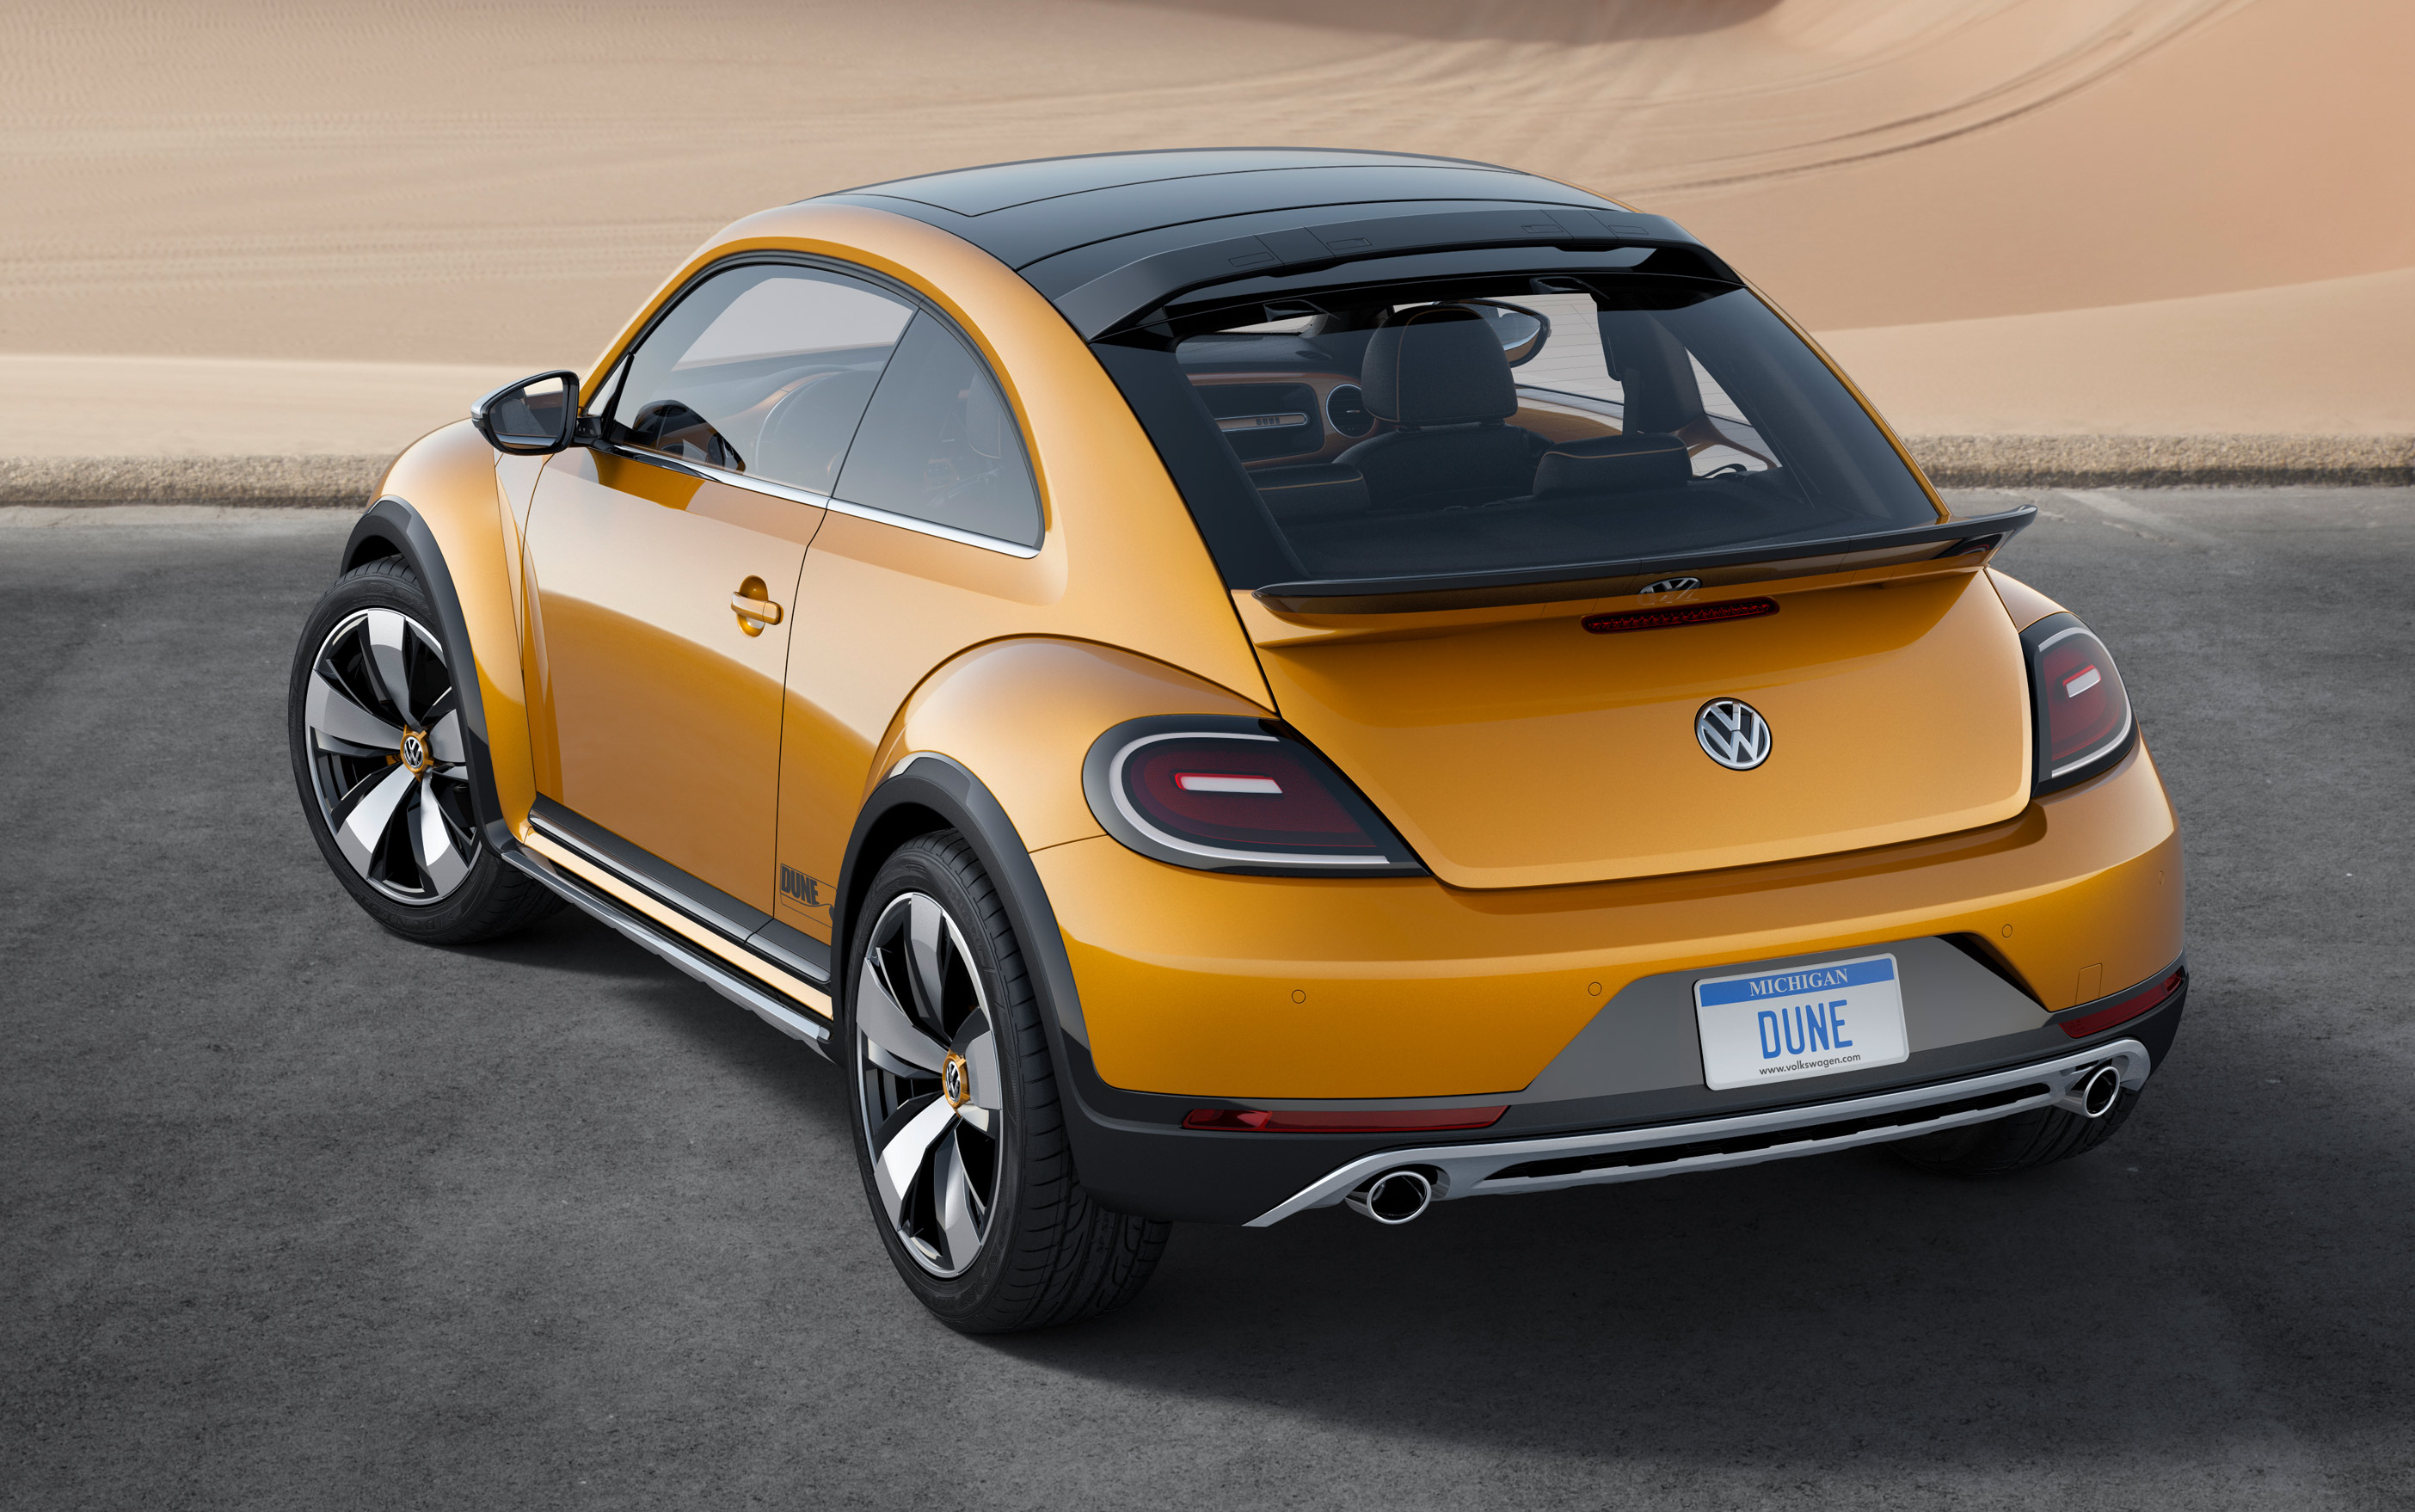 2016 Vw Beetle Dune Concept Pricing And Release Date